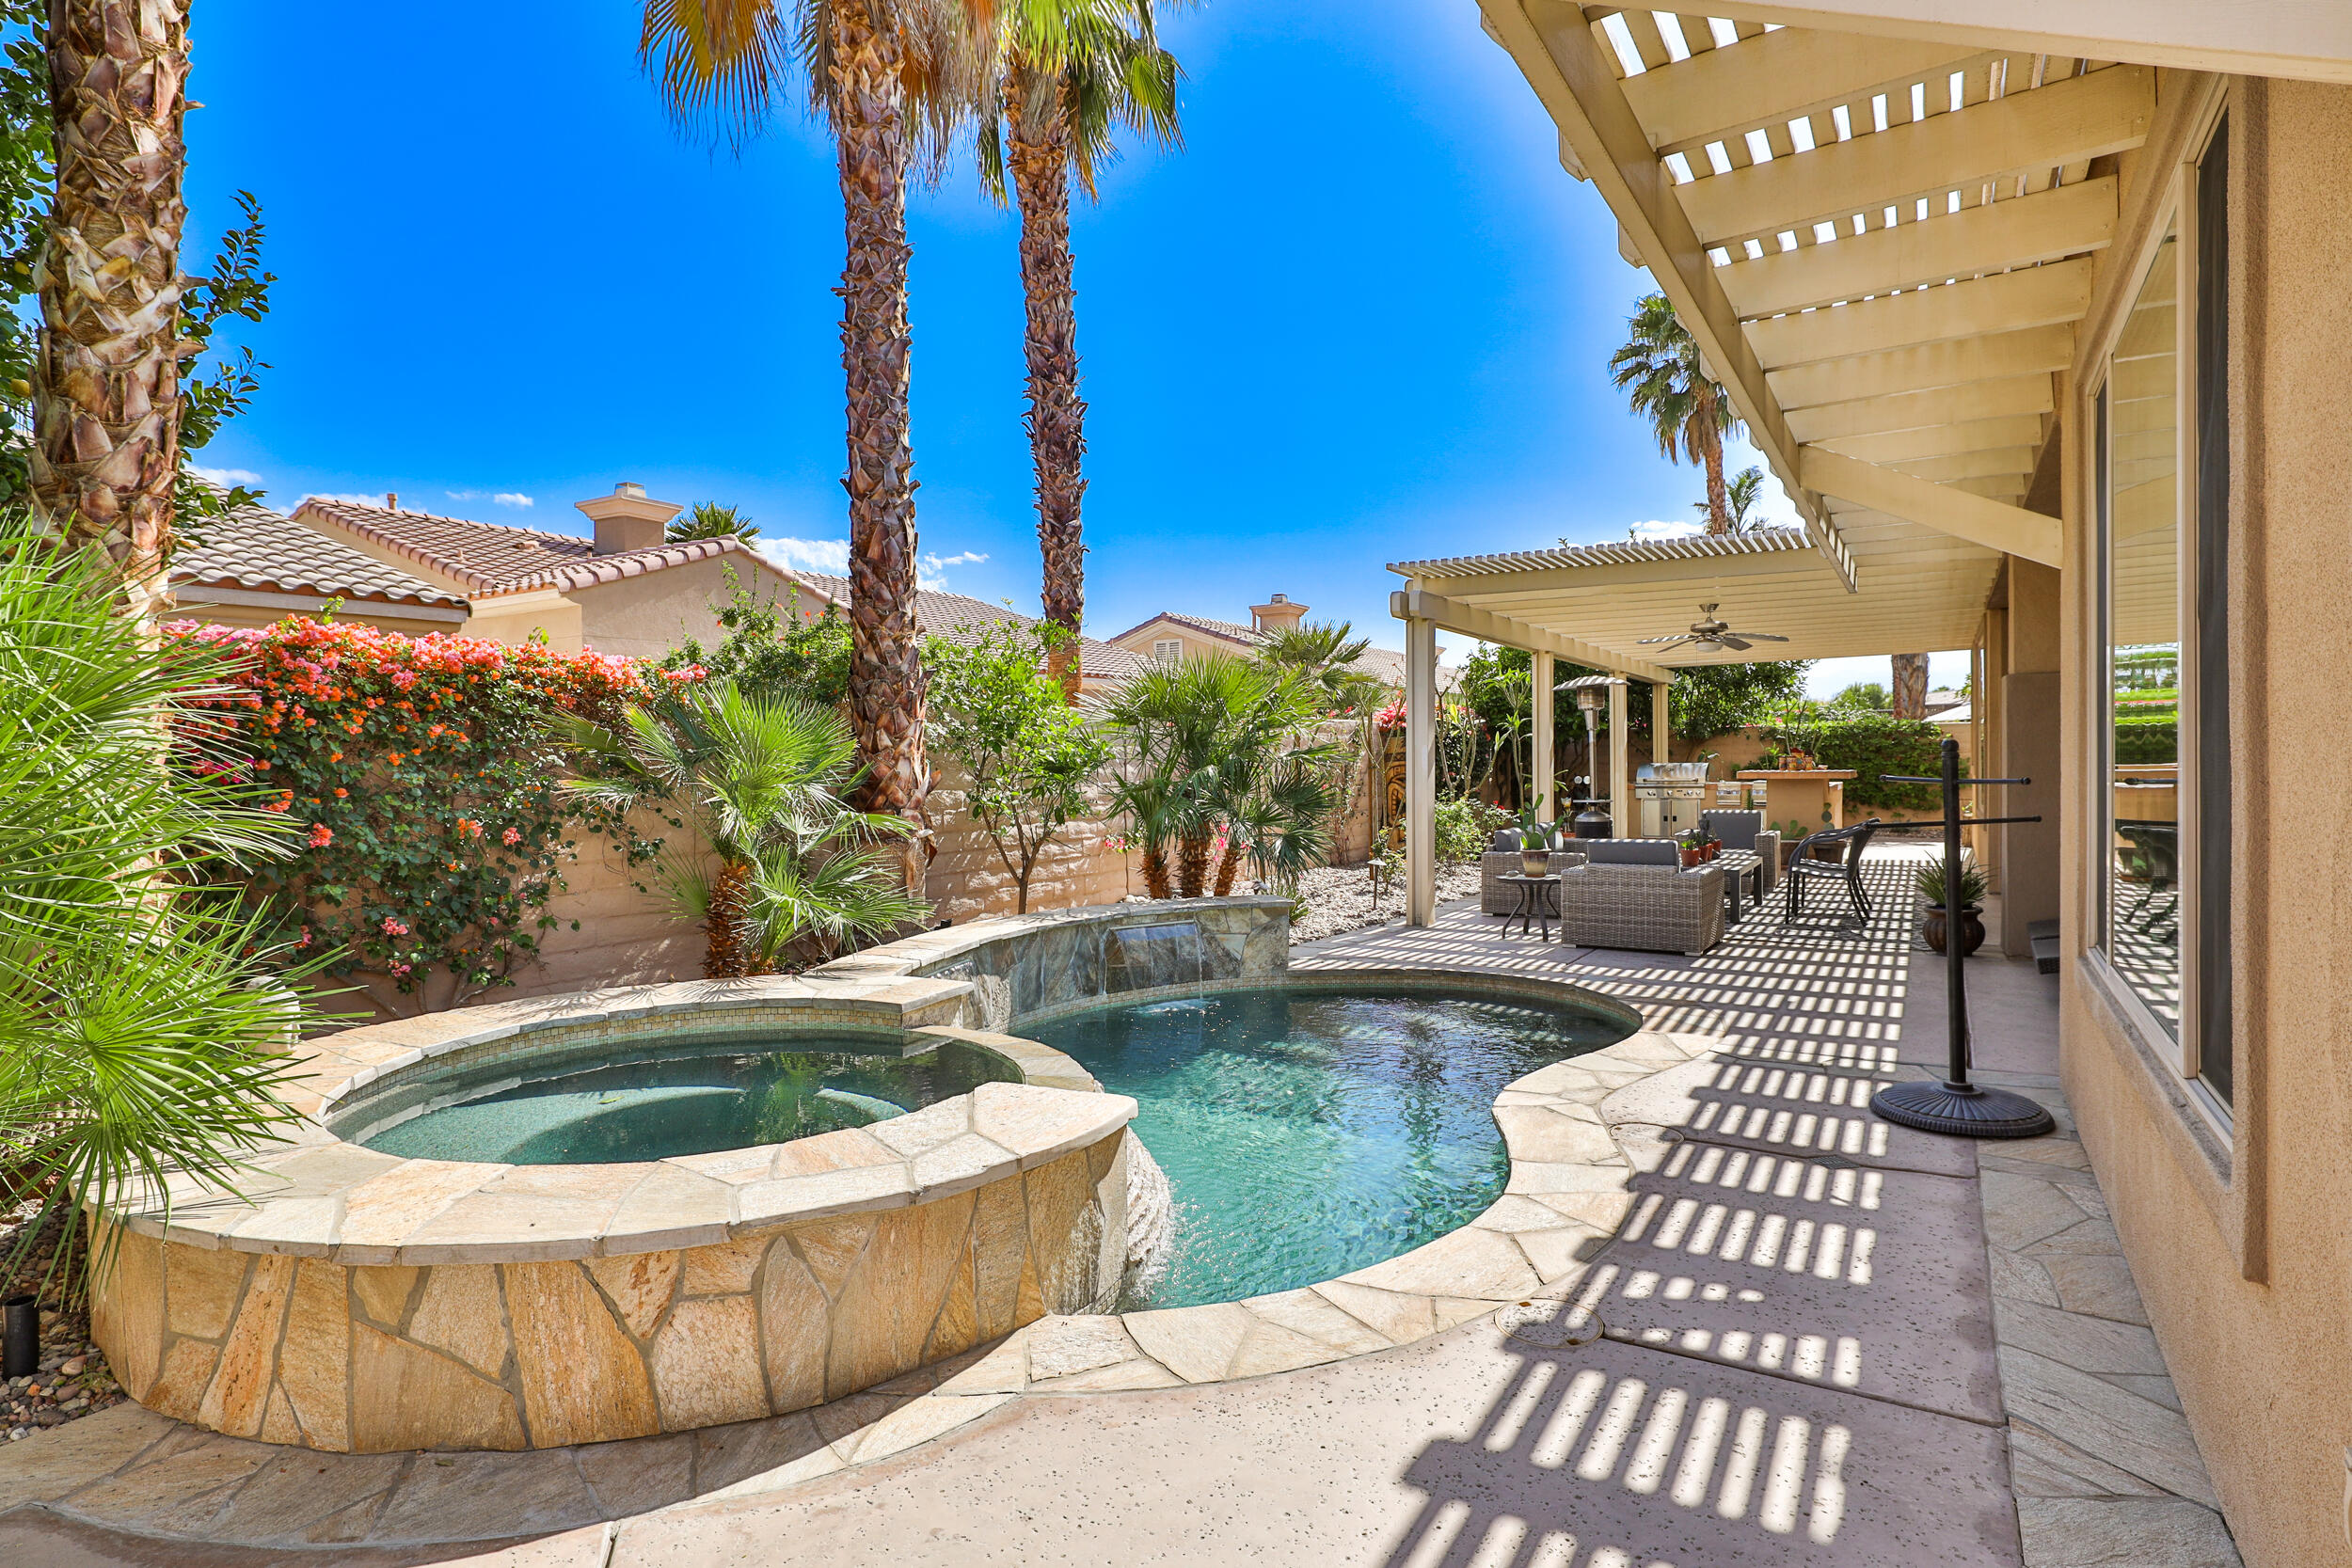 This gorgeous home is located in Sun City Shadow Hills, an active 55+ adult community & shows pride of ownership. With 3BR/3.5BA (includes a 1BR detached Casita w/ bath), den can be 4th BR & approx. 2966 SF (La Paz model) of fabulous! Relax & enjoy the sparkling pool/spa in the entertainer's yard w/an outdoor kitchen, BBQ, warming drawer, burner, sink & large Alumawood overhang. There is a TV & an outdoor shower. The newly remodeled kitchen has stunning quartz counter tops & a stone backsplash w/dark cabinets, glass doors & a spacious walk-in pantry! Gorgeous formal dining room with elegant chandelier & a Butler's pantry. The sumptuous master suite is on one side of the home for complete privacy! Master bath has a spa shower, dual sinks, a vanity & the walk-in closet is huge with built-in shelving as well as drawers. The home is painted in lovely gray tones, w/ crown moldings throughout, ceiling fans & 6 newer TV's. Indoor laundry room has a sink. The 3-car garage has epoxy flooring & plenty of cabinet space. This popular adult community offers 36 holes of golf, state of the art fitness center, restaurant, tennis, pickle ball, bocce & numerous clubs, social activities, a 35,000 sq. ft. clubhouse w/state-of-the-art fitness center, indoor & outdoor pools/spas, tennis, bocce, billiards, special events & so much more! The Shadow Hills North Course has 18 holes of Par-3 while the South Golf Course provides 18 holes of Award-winning, championship-level golf. Beautifully furnished!